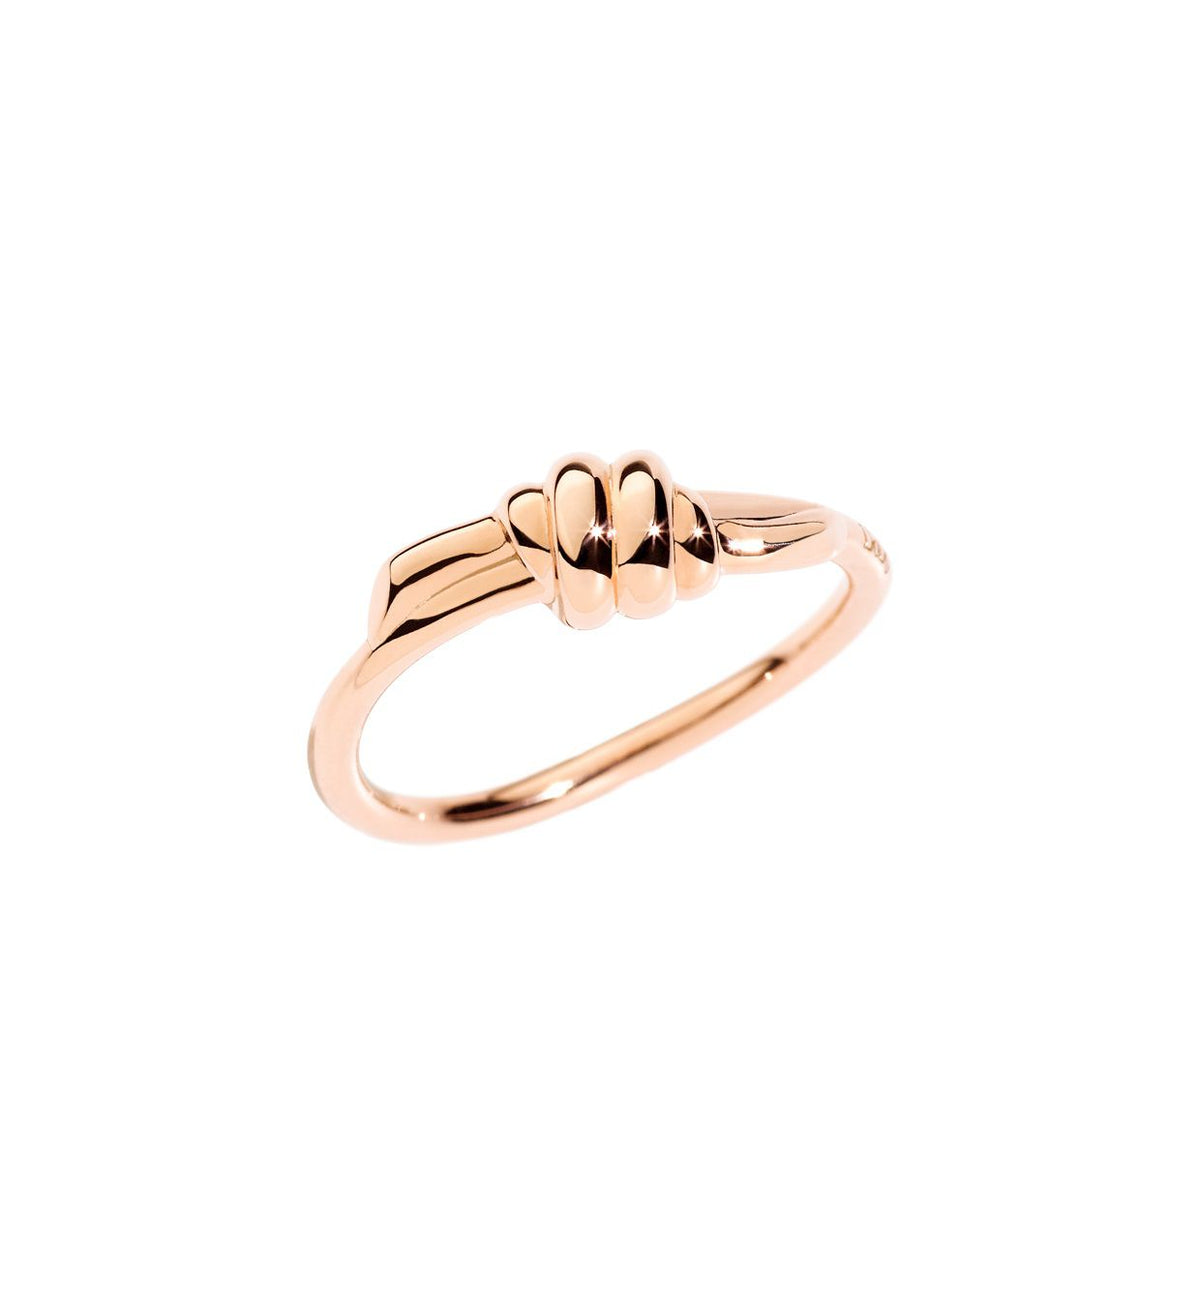 DoDo Ring Nodo in 9k Rose Gold - Orsini Jewellers NZ